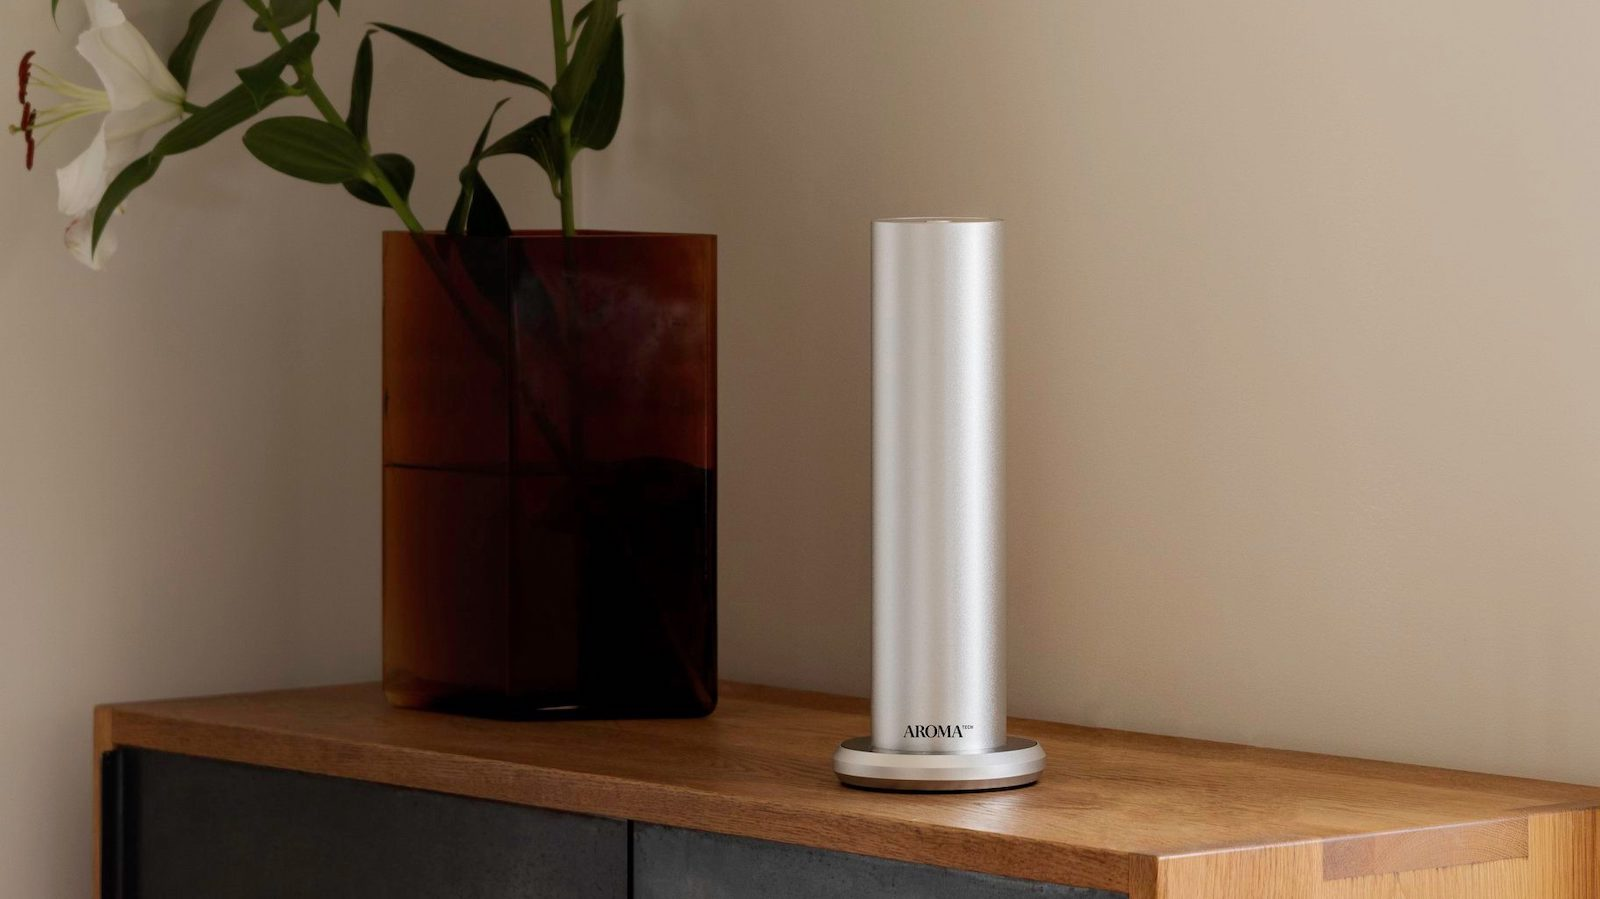 AromaTech BT home diffuser disperses essential oil molecules up to 1,000 square feet